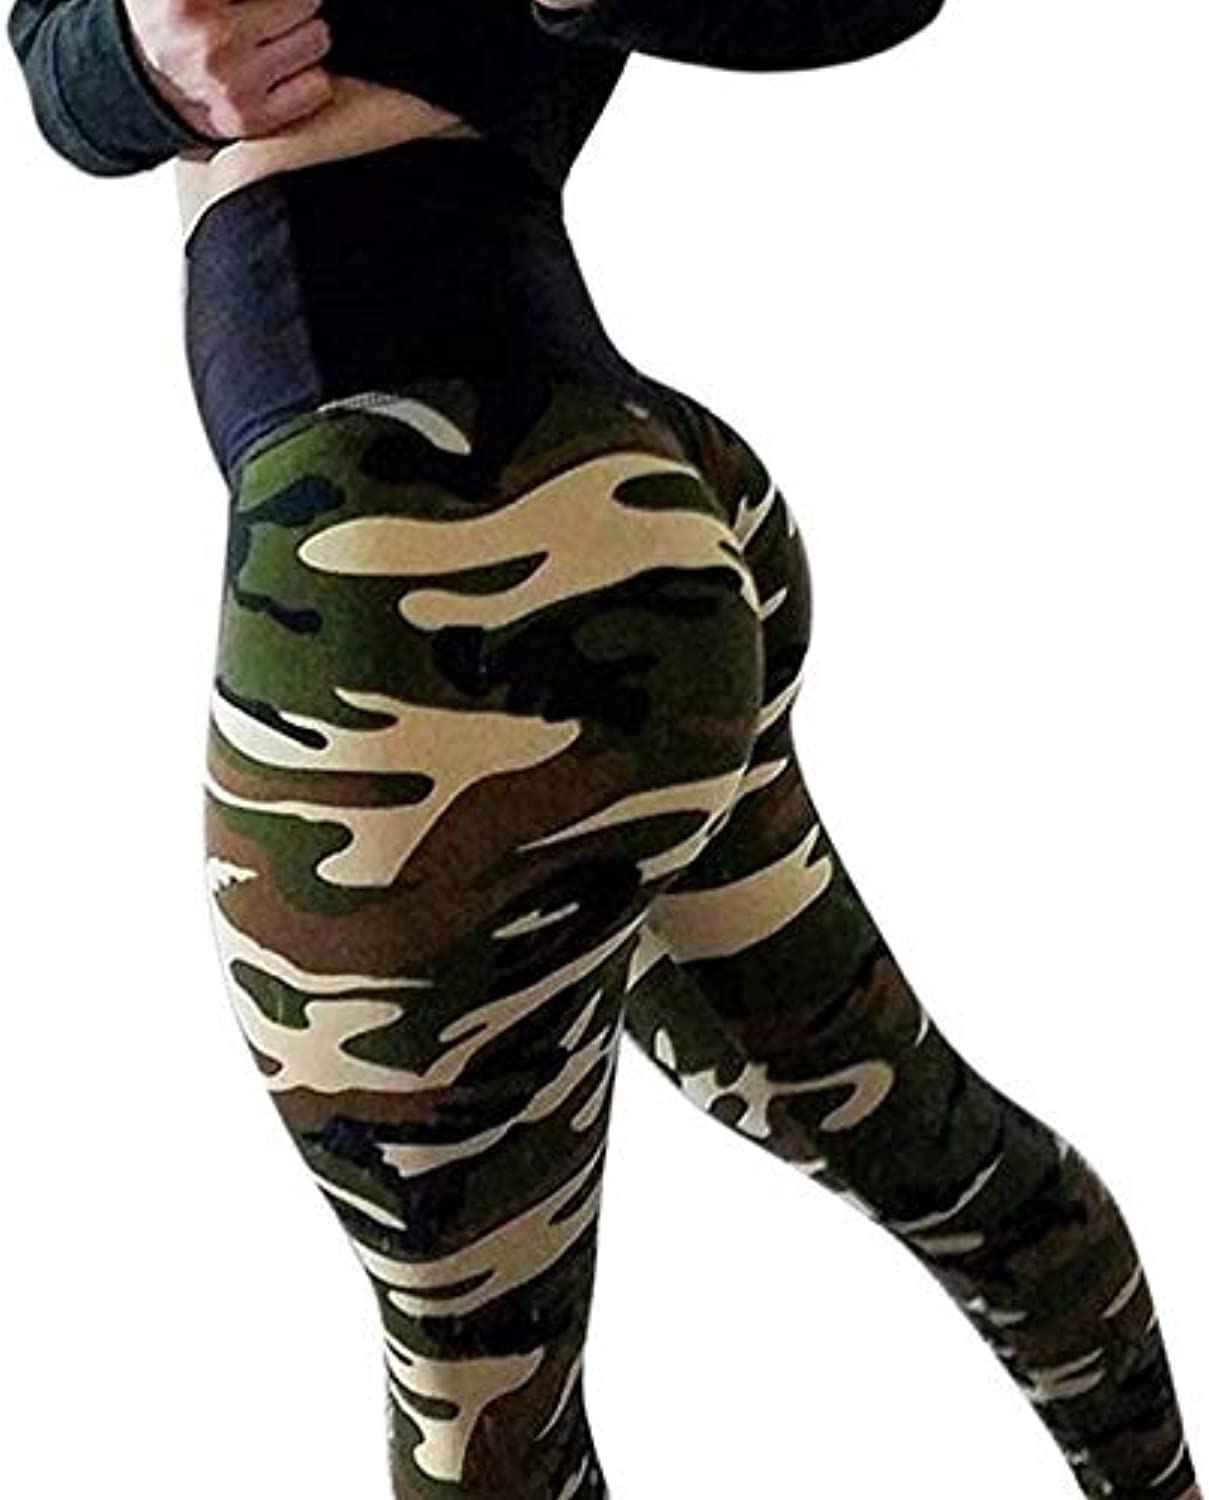 Loozykit Yoga Pants Women High Waist Sport Fitness Leggings Camouflage Patchwork Hip Exercise Trousers Slim Pencil Pants , L